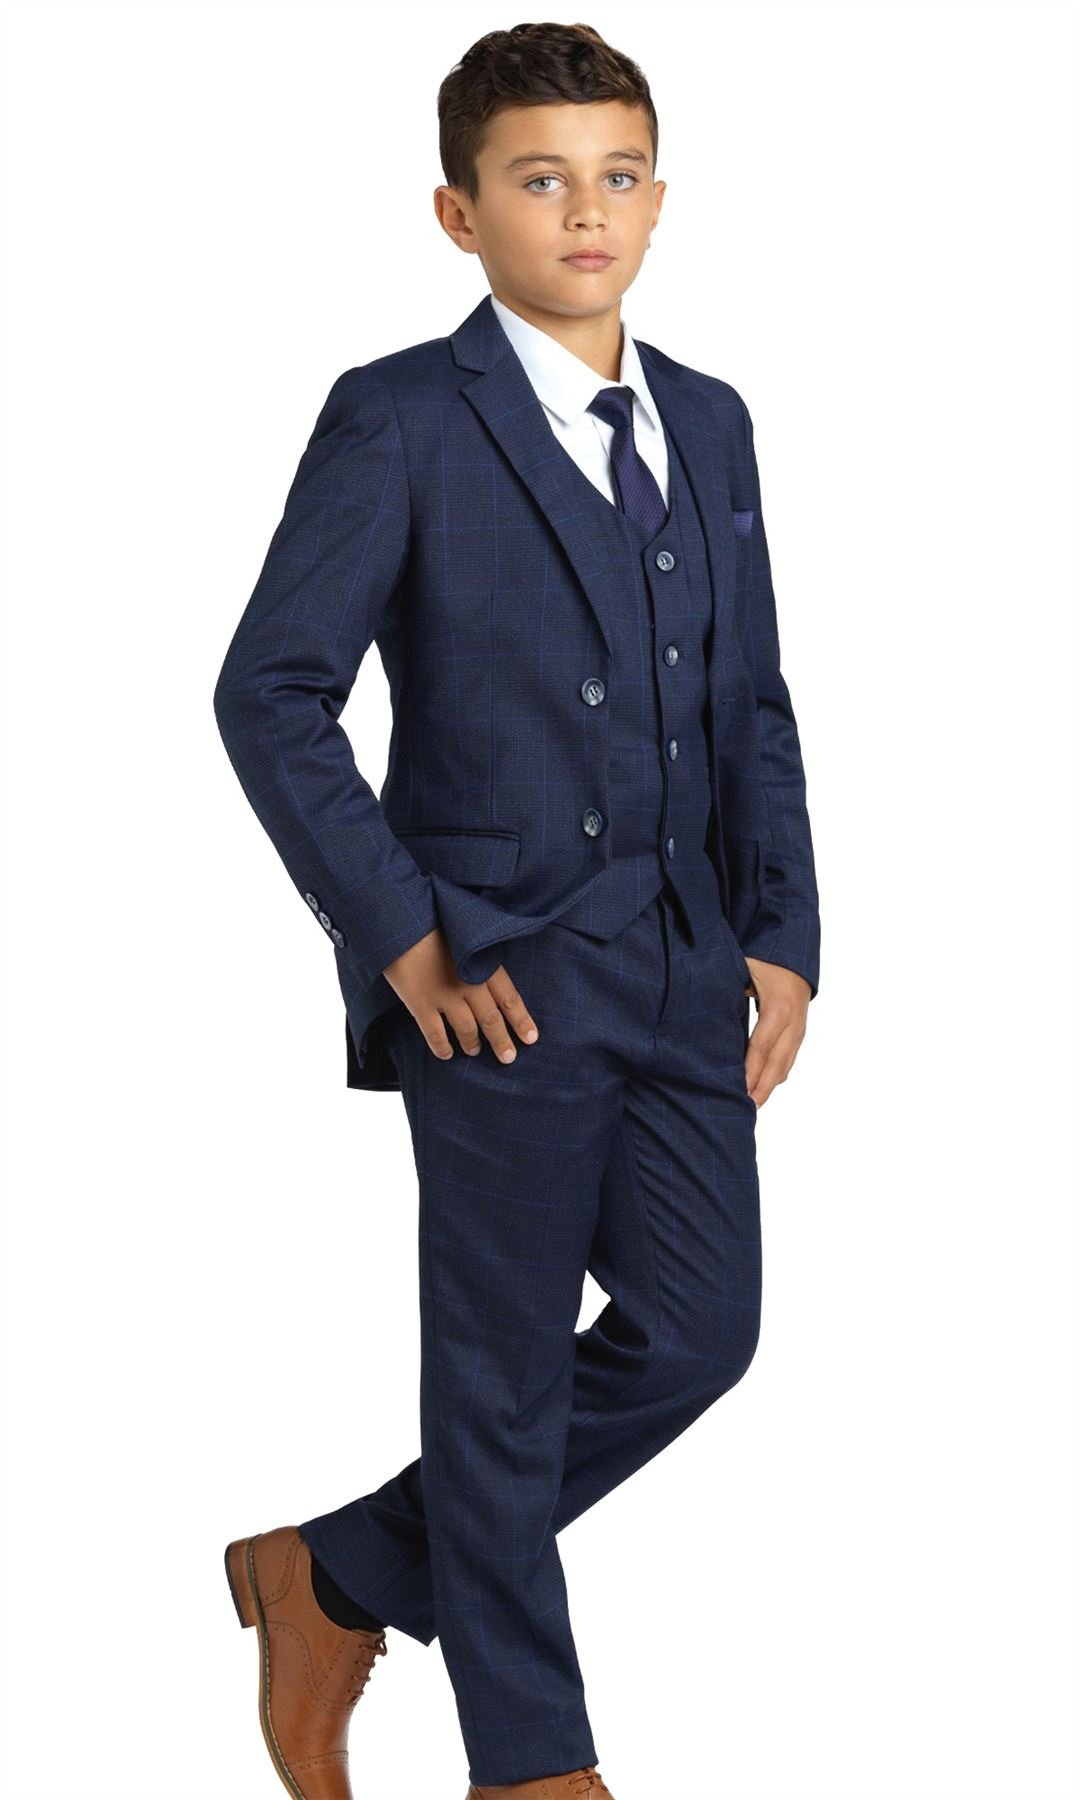 Paisley of London, Henry Navy Check Occasion Wear, Boys Navy Wedding Slim Fit Suit with Shirt and Vest, 16